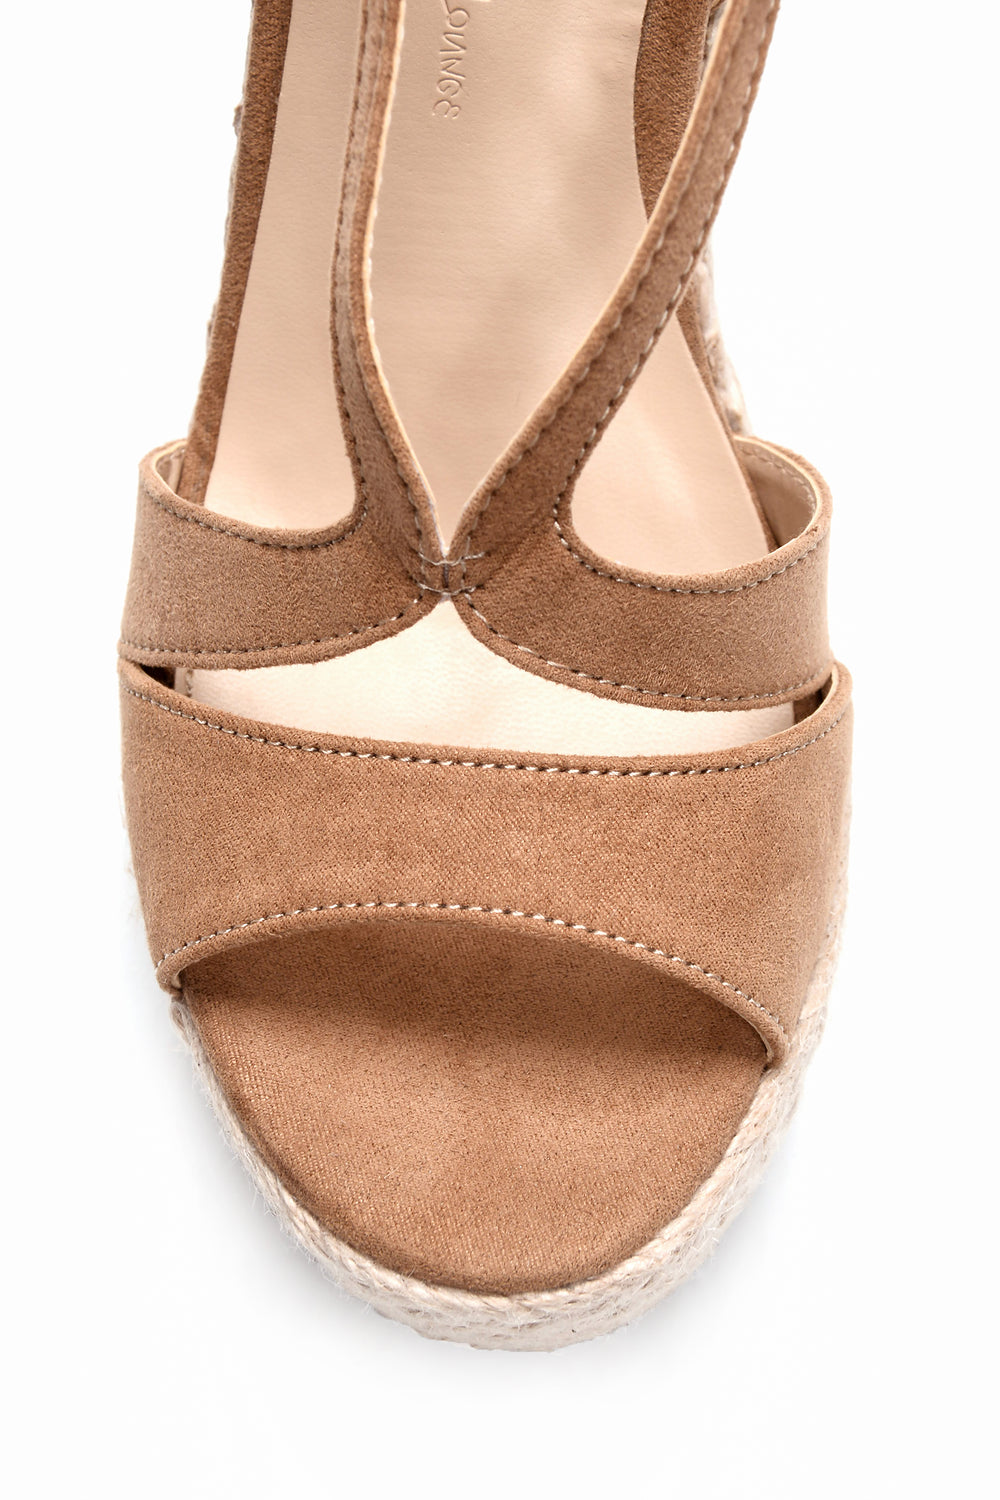 Walk Away With Me Wedge - Camel